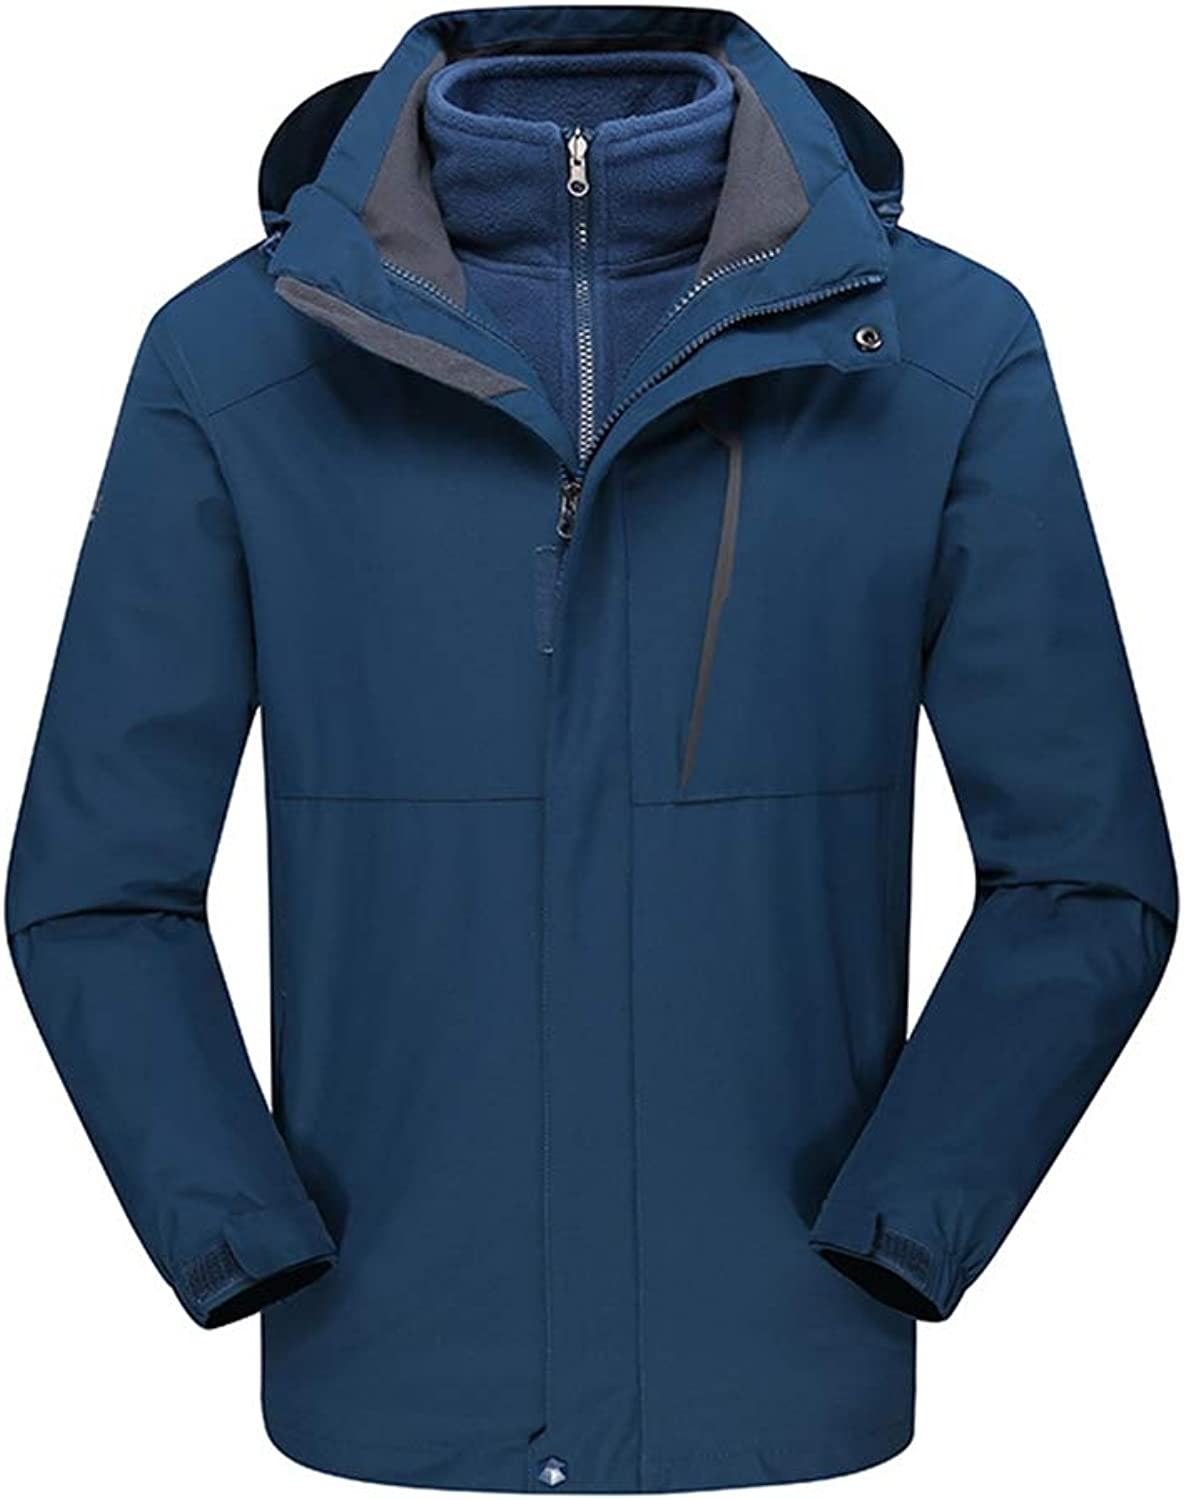 c82d4a2b2 Insun Men's Thick Warm Outdoor Waterproof Softshell 3-in-1 Hooded ...